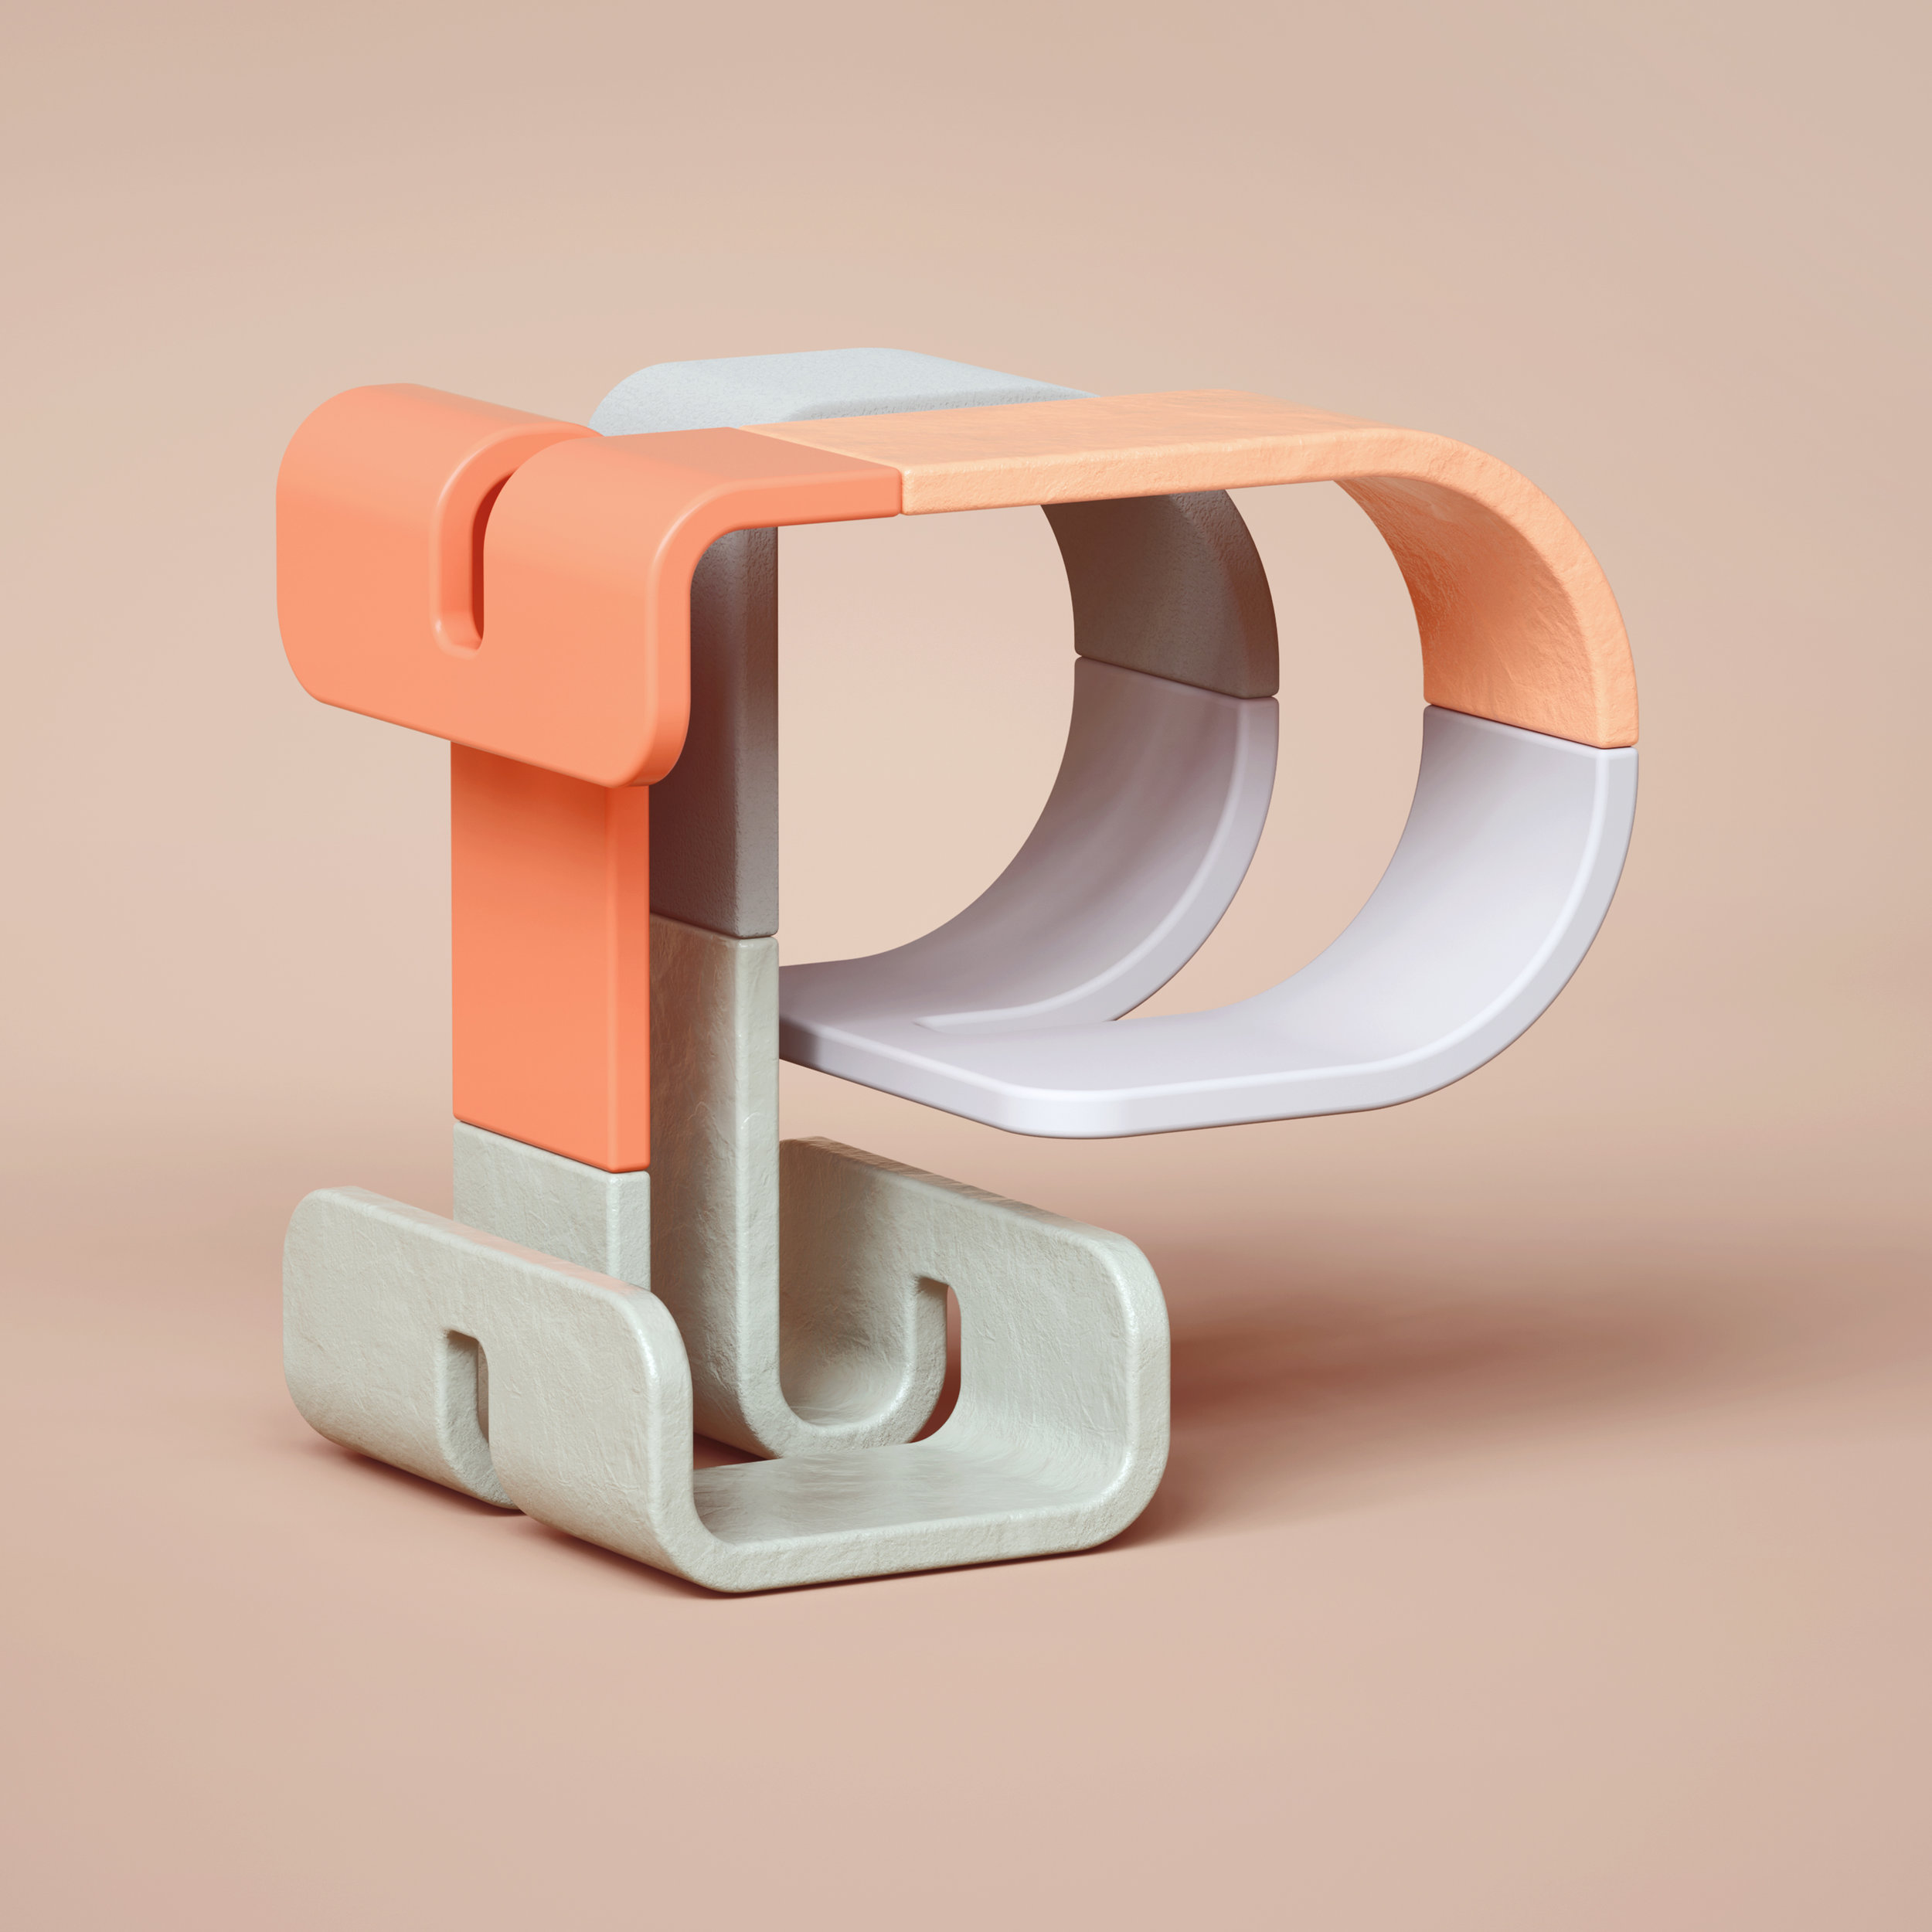 36 Days of Type 2019 - 3D Typeform letter P visual.